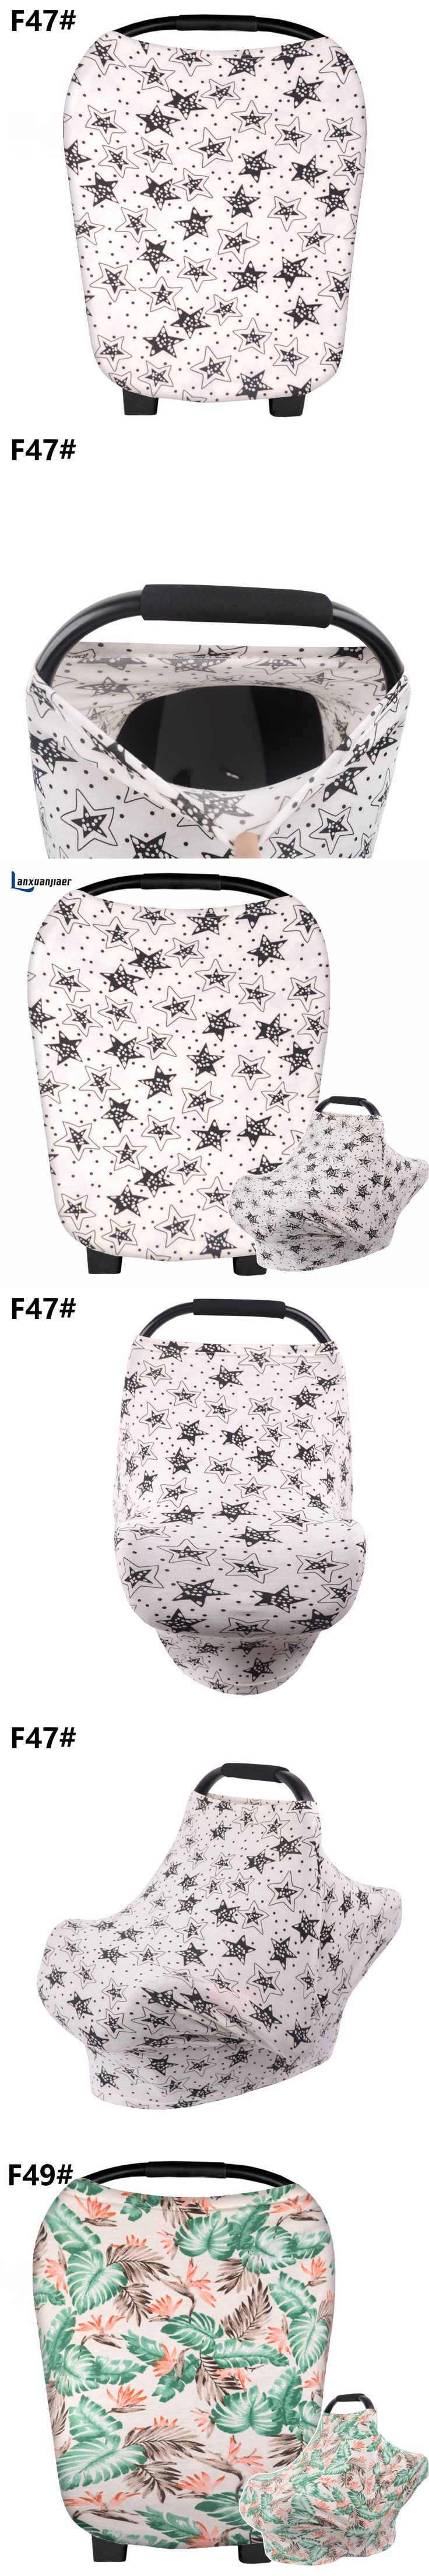 Breastfeeding nursing Cover Baby Car Seat Canopy Nursing Scarf cute star cotton Shopping Cart Cover and Stroller Sunshade covers